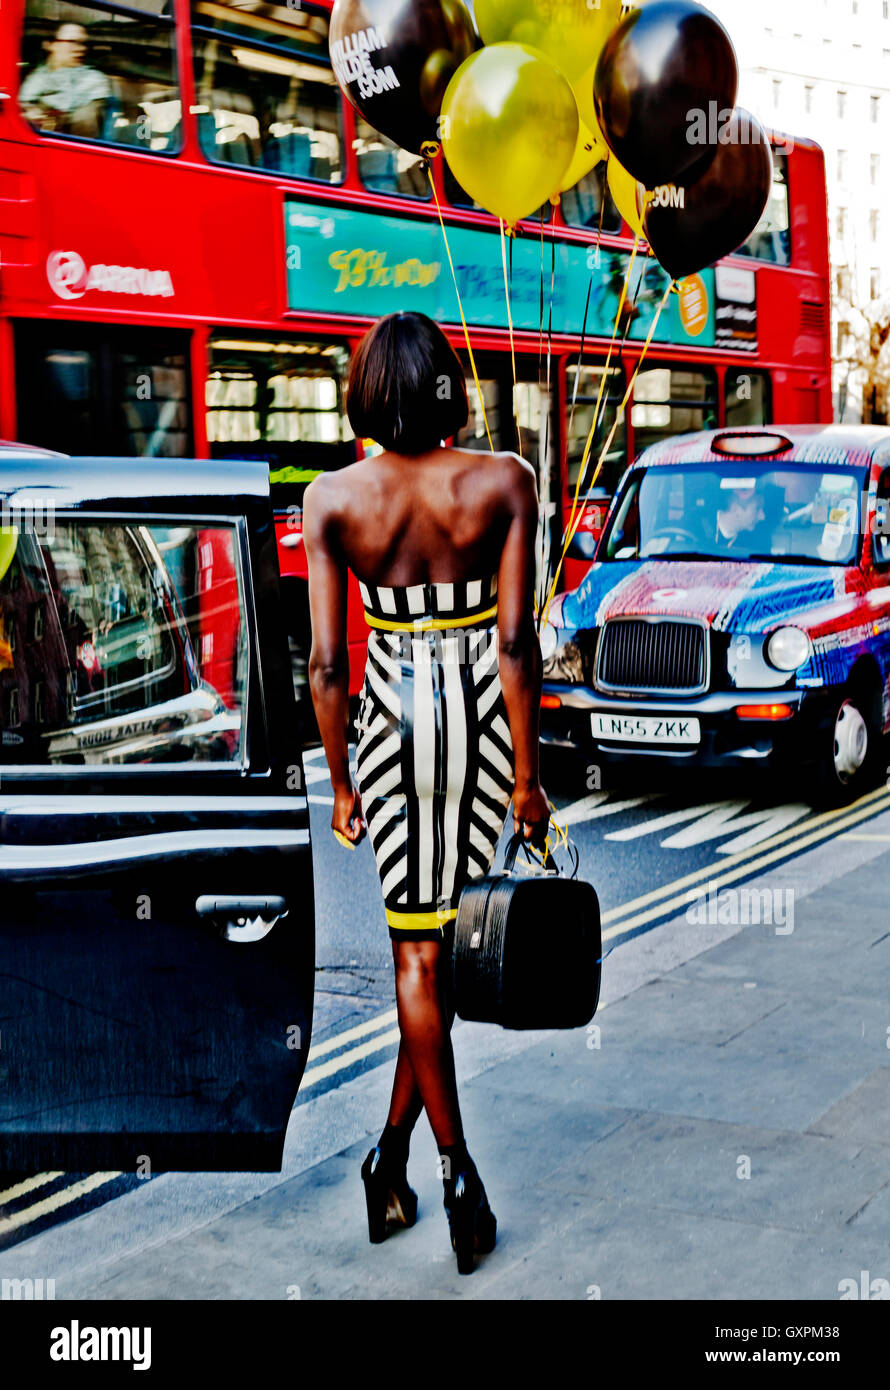 London Fashion Week February 2013, Attractive Fashion Model poses with balloons amidst London traffic, London WC2, - Stock Image